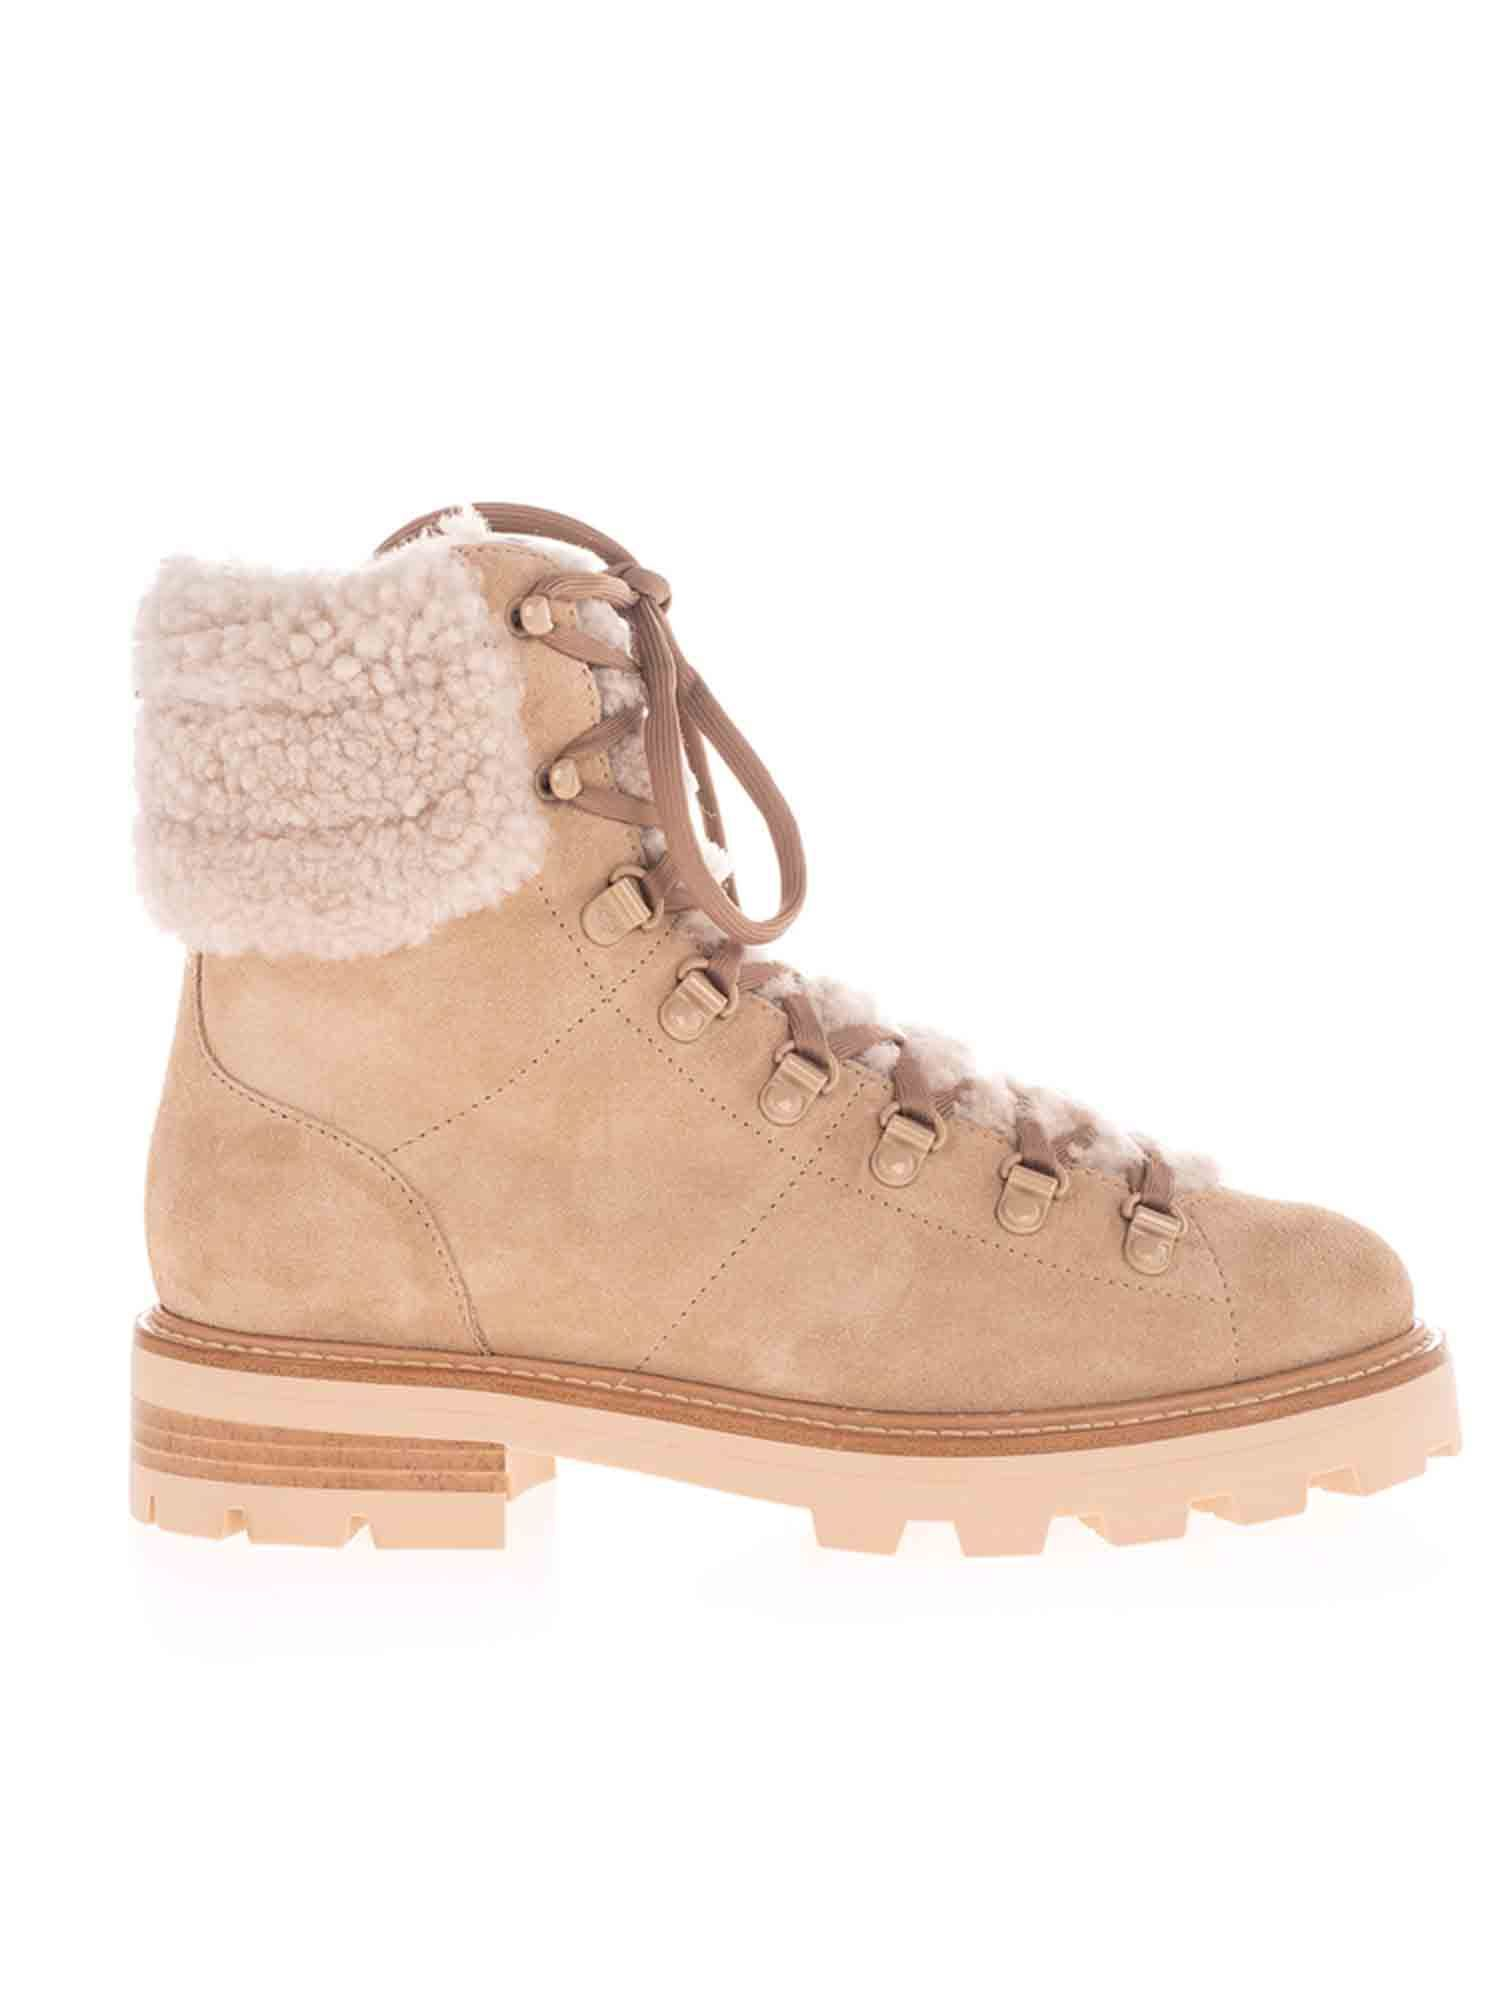 Jimmy Choo ESHE SHEARLING BOOTS IN BEIGE